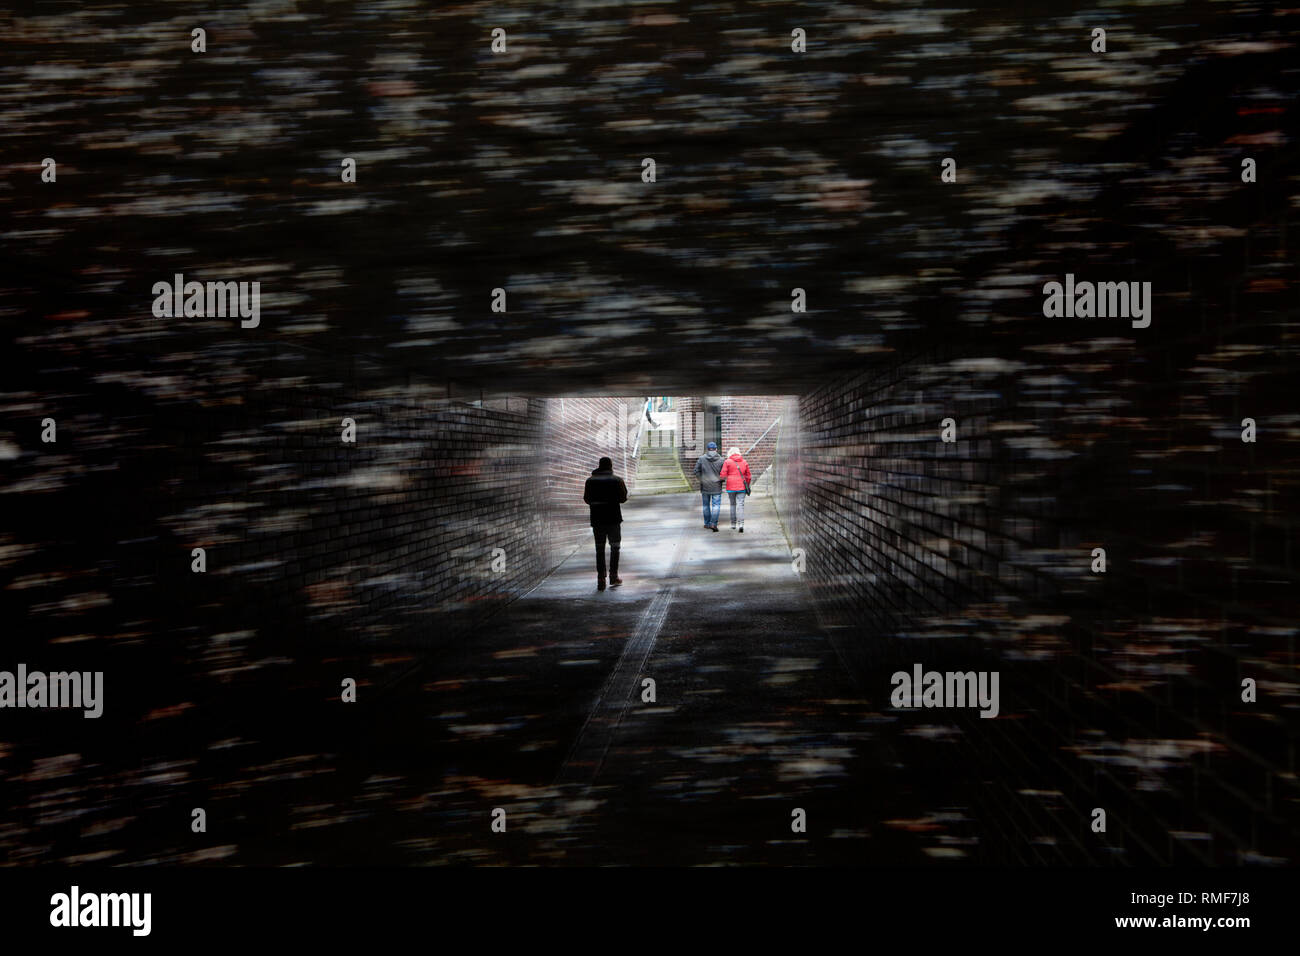 Walking in a dark tunnel, Germany - Stock Image